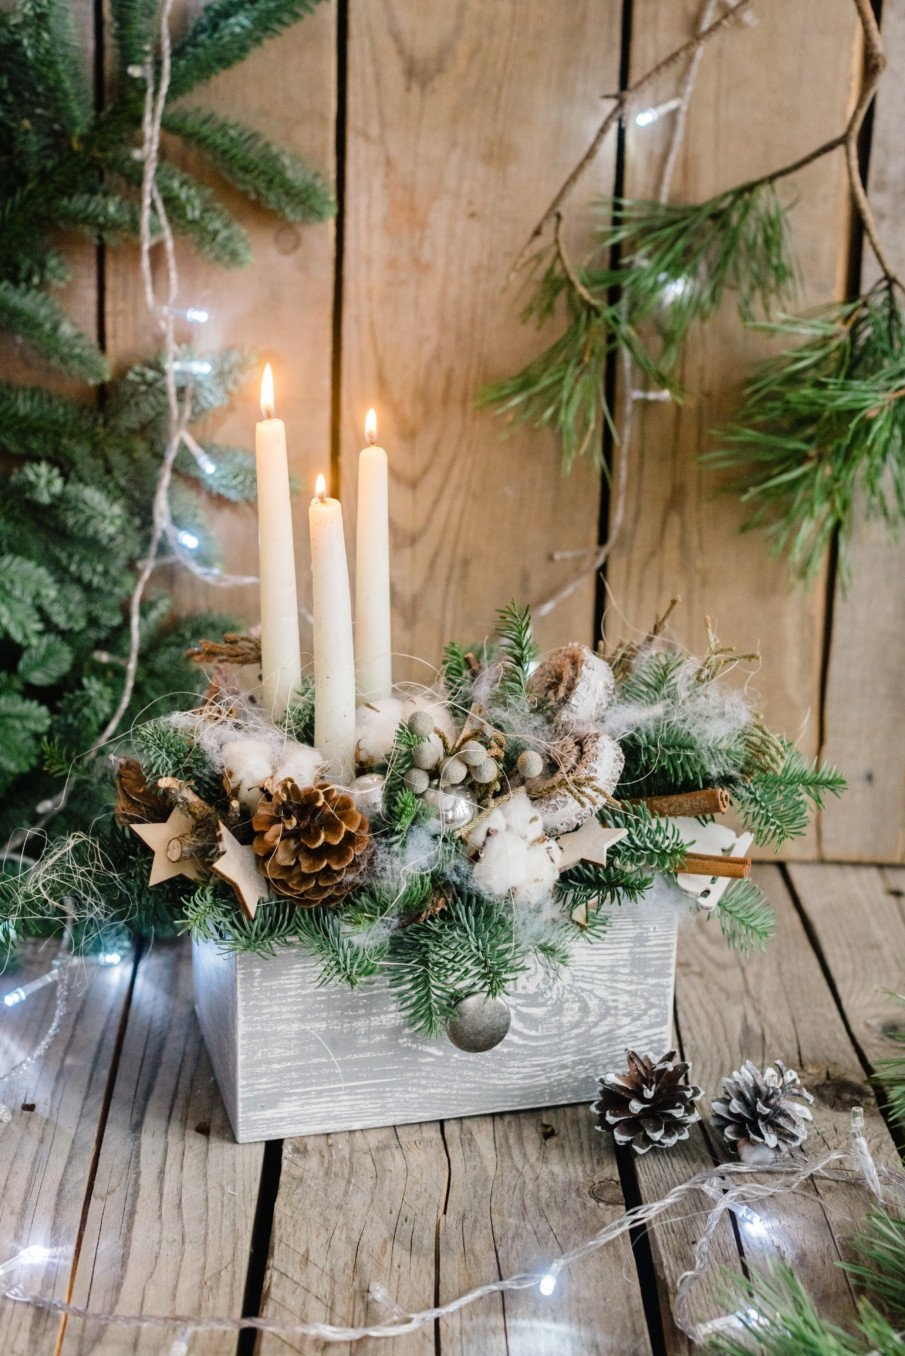 Clever tabletop centerpiece idea using a repurposed drawer with white candles and snowy boughs